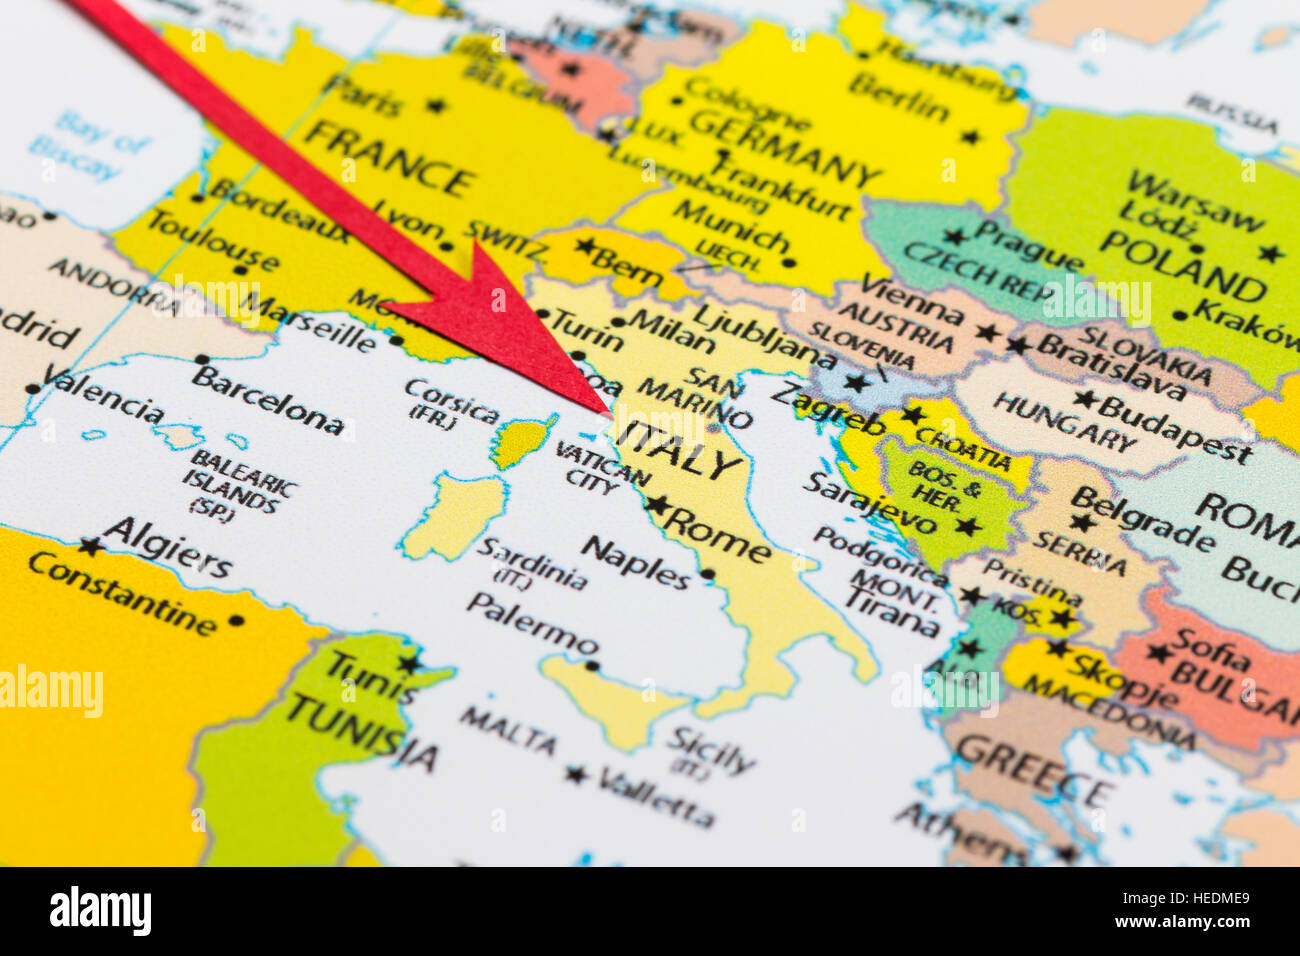 Red arrow pointing on map stock photos red arrow pointing on map red arrow pointing italy on the map of europe continent stock image gumiabroncs Gallery